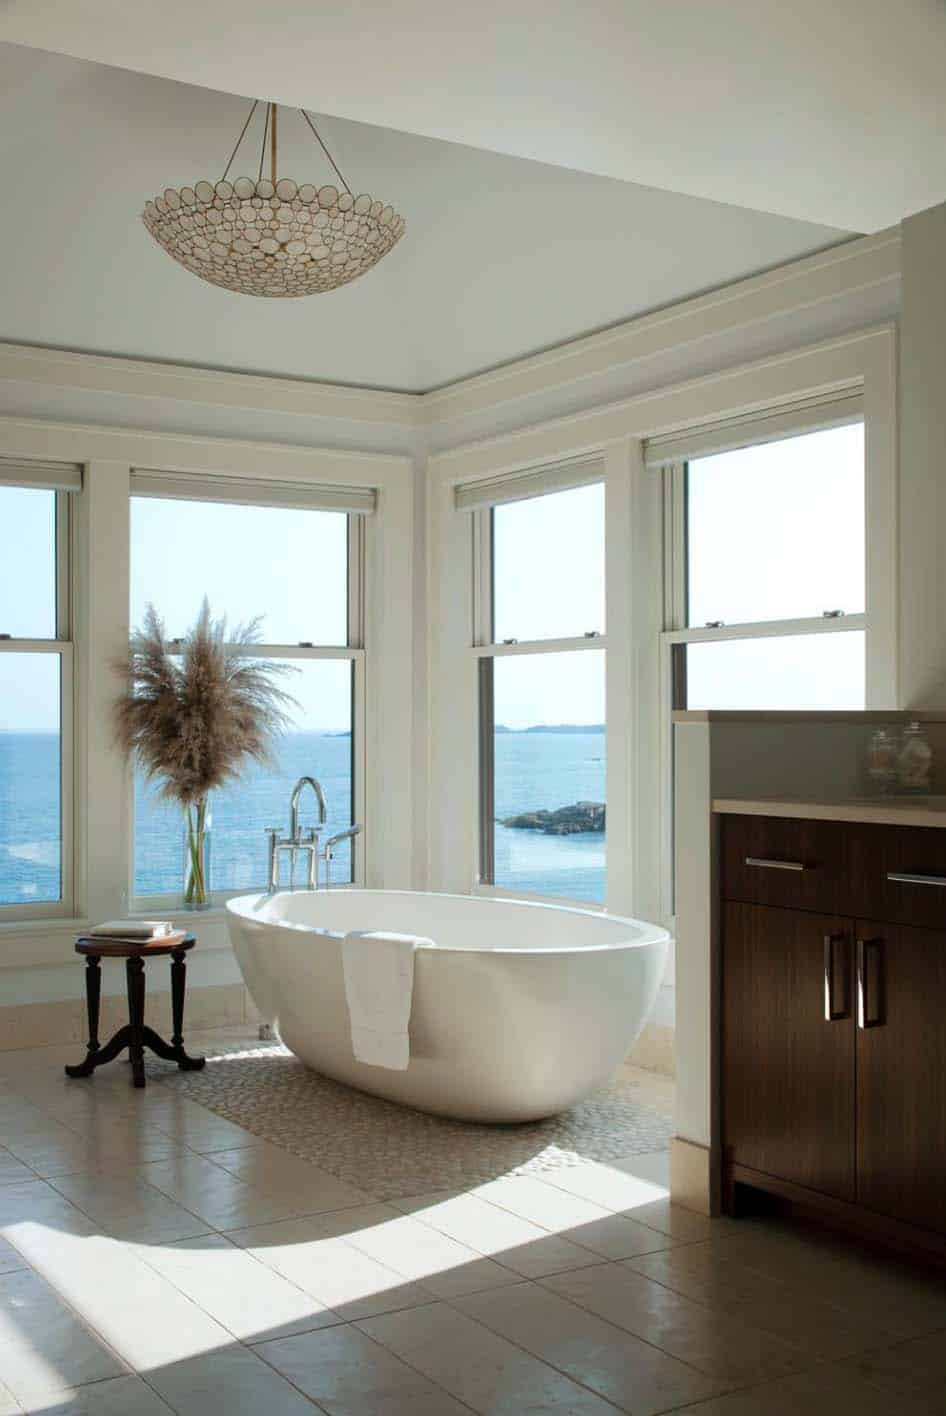 Freestanding-Tubs-Bathroom-Ideas-11-1 Kindesign